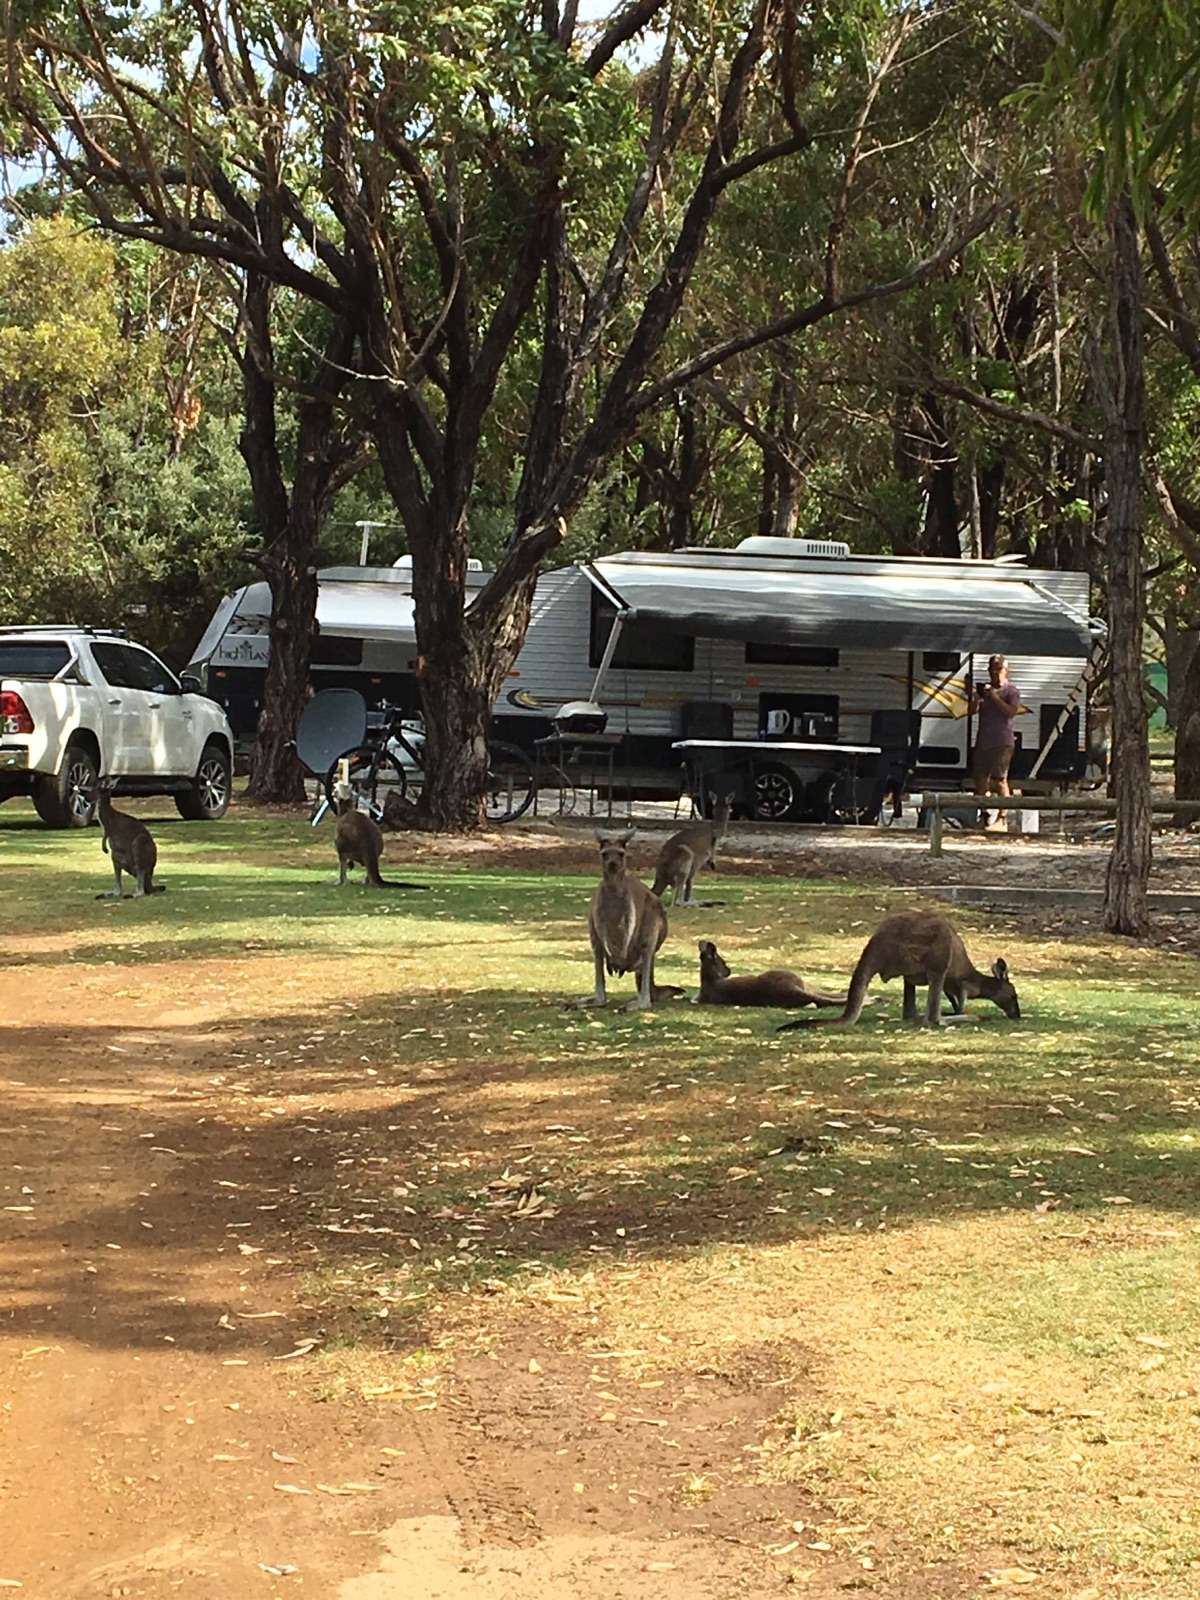 Kangaroos in the park